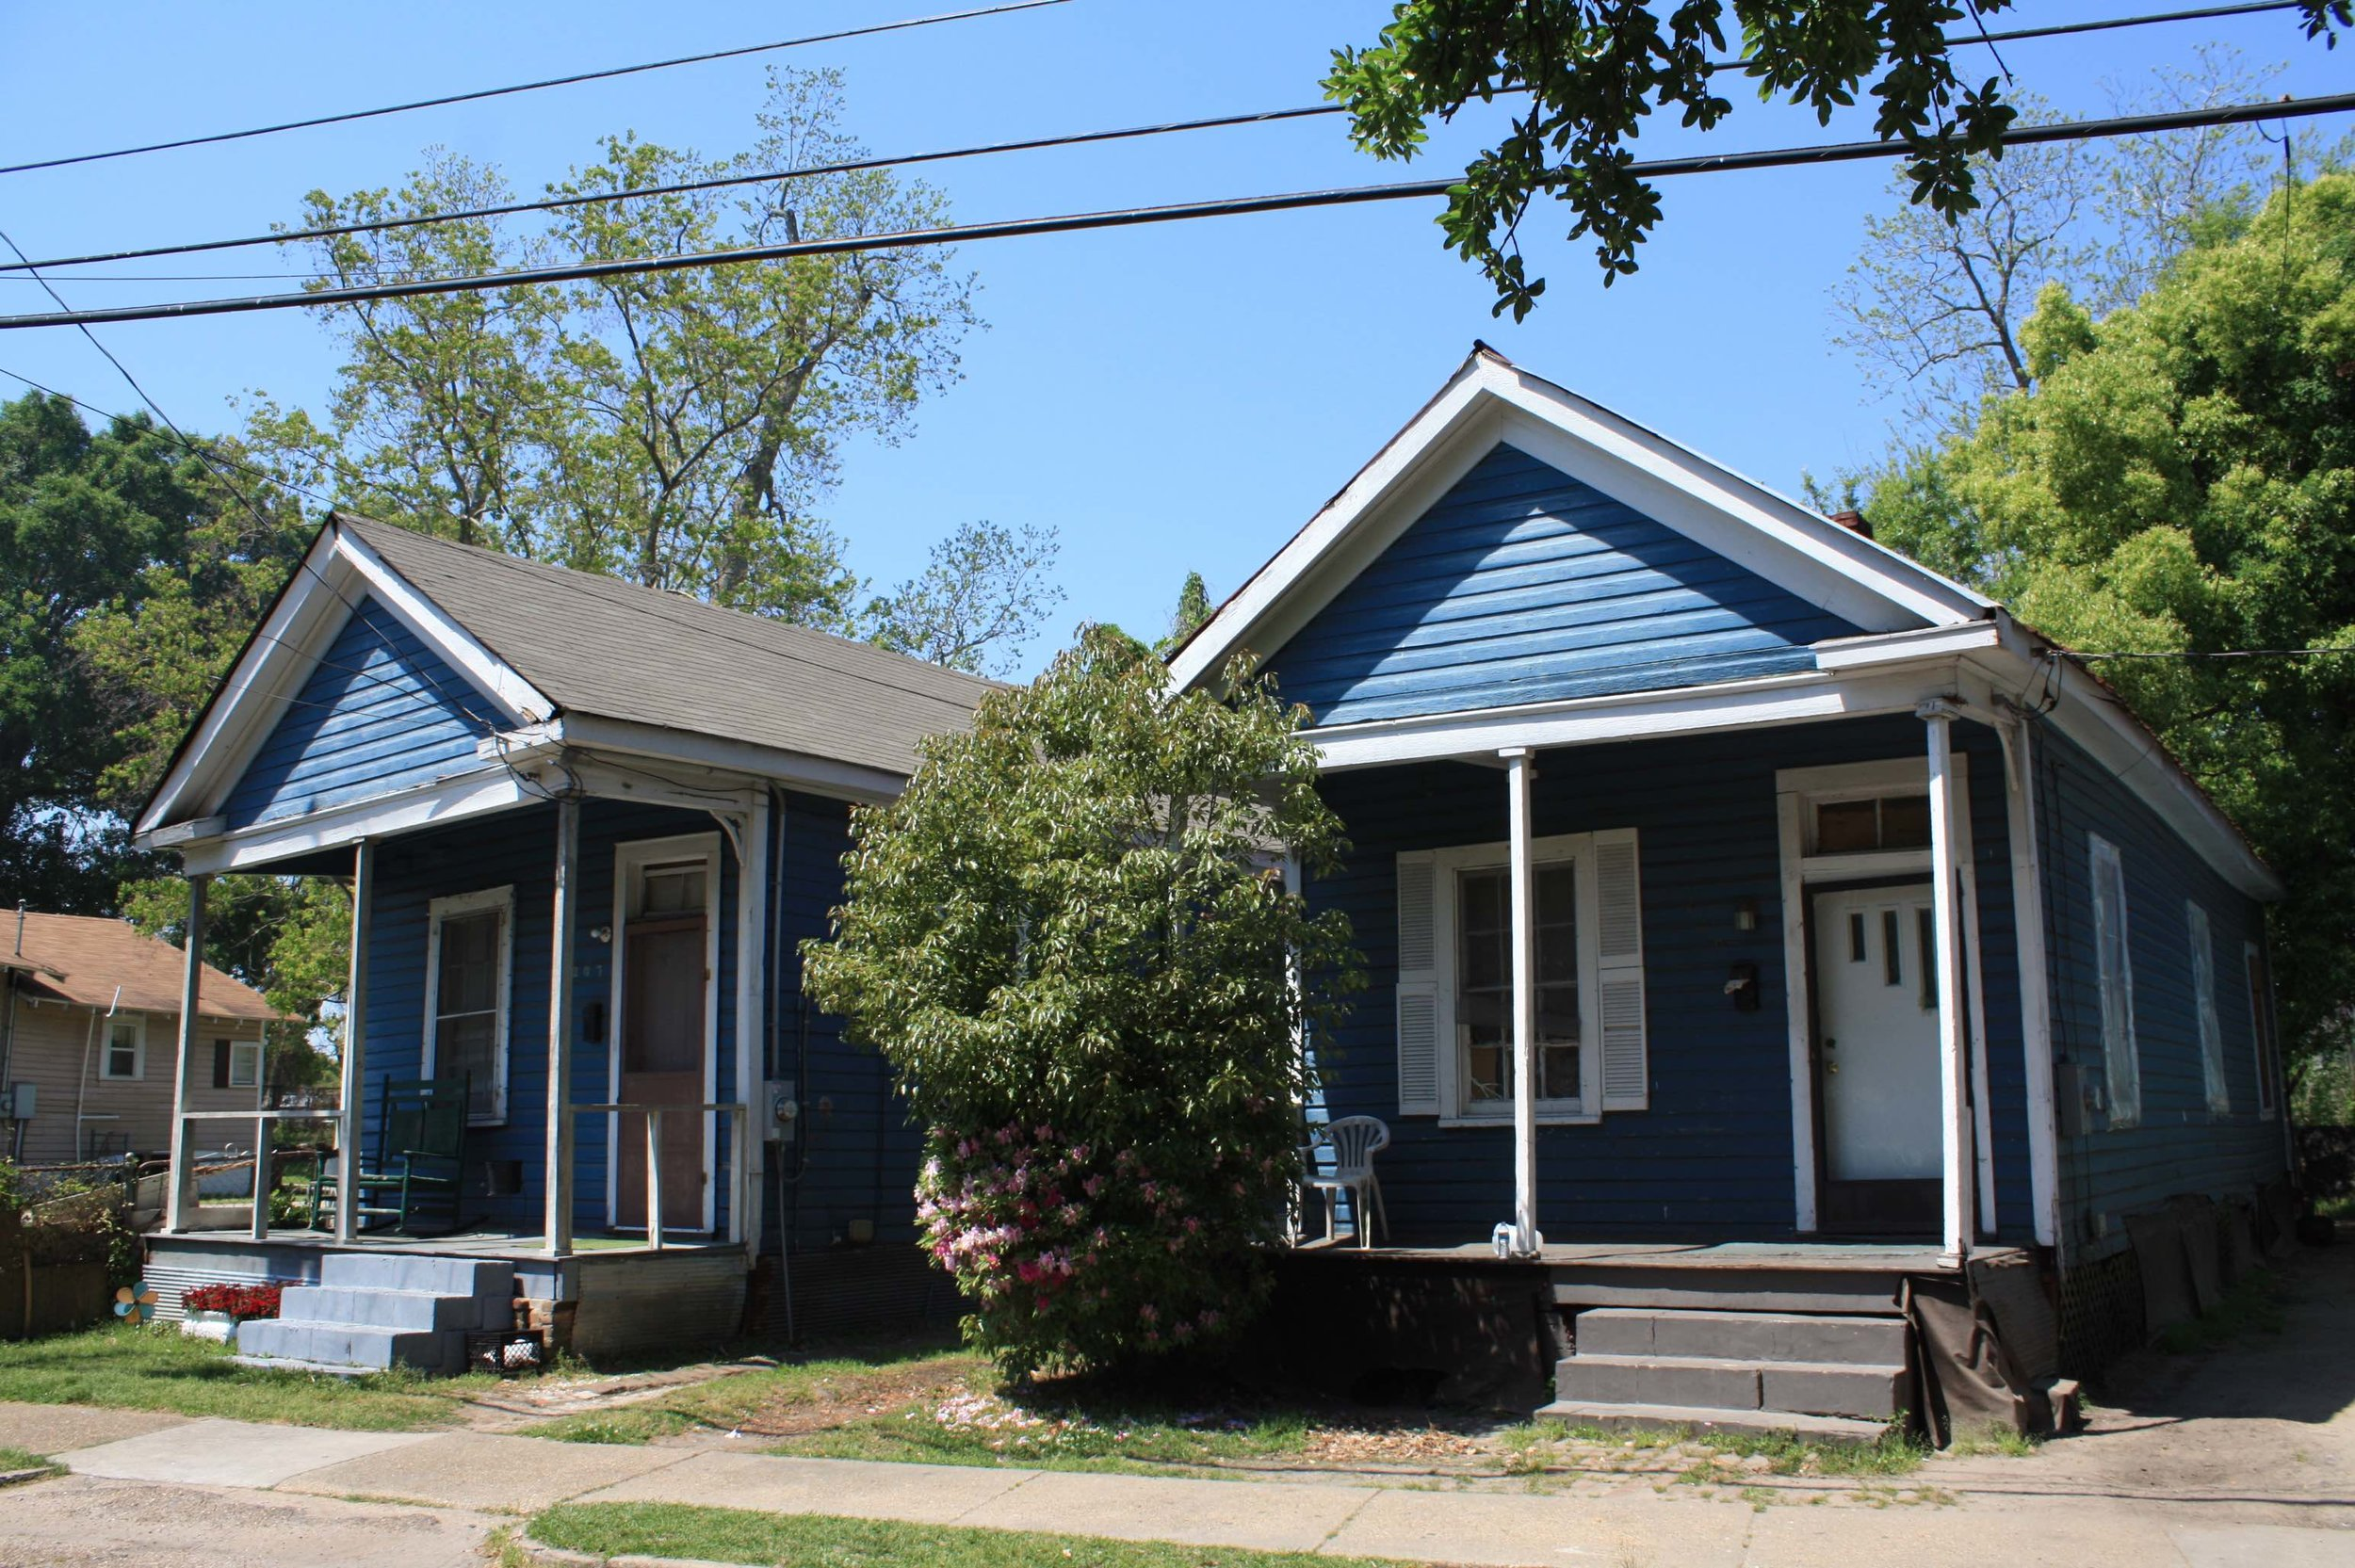 Shotgun houses are a historically common type of home in Gulf Coast cities including Houston. Under many suburban minimum-lot-size rules, these homes would be illegal.